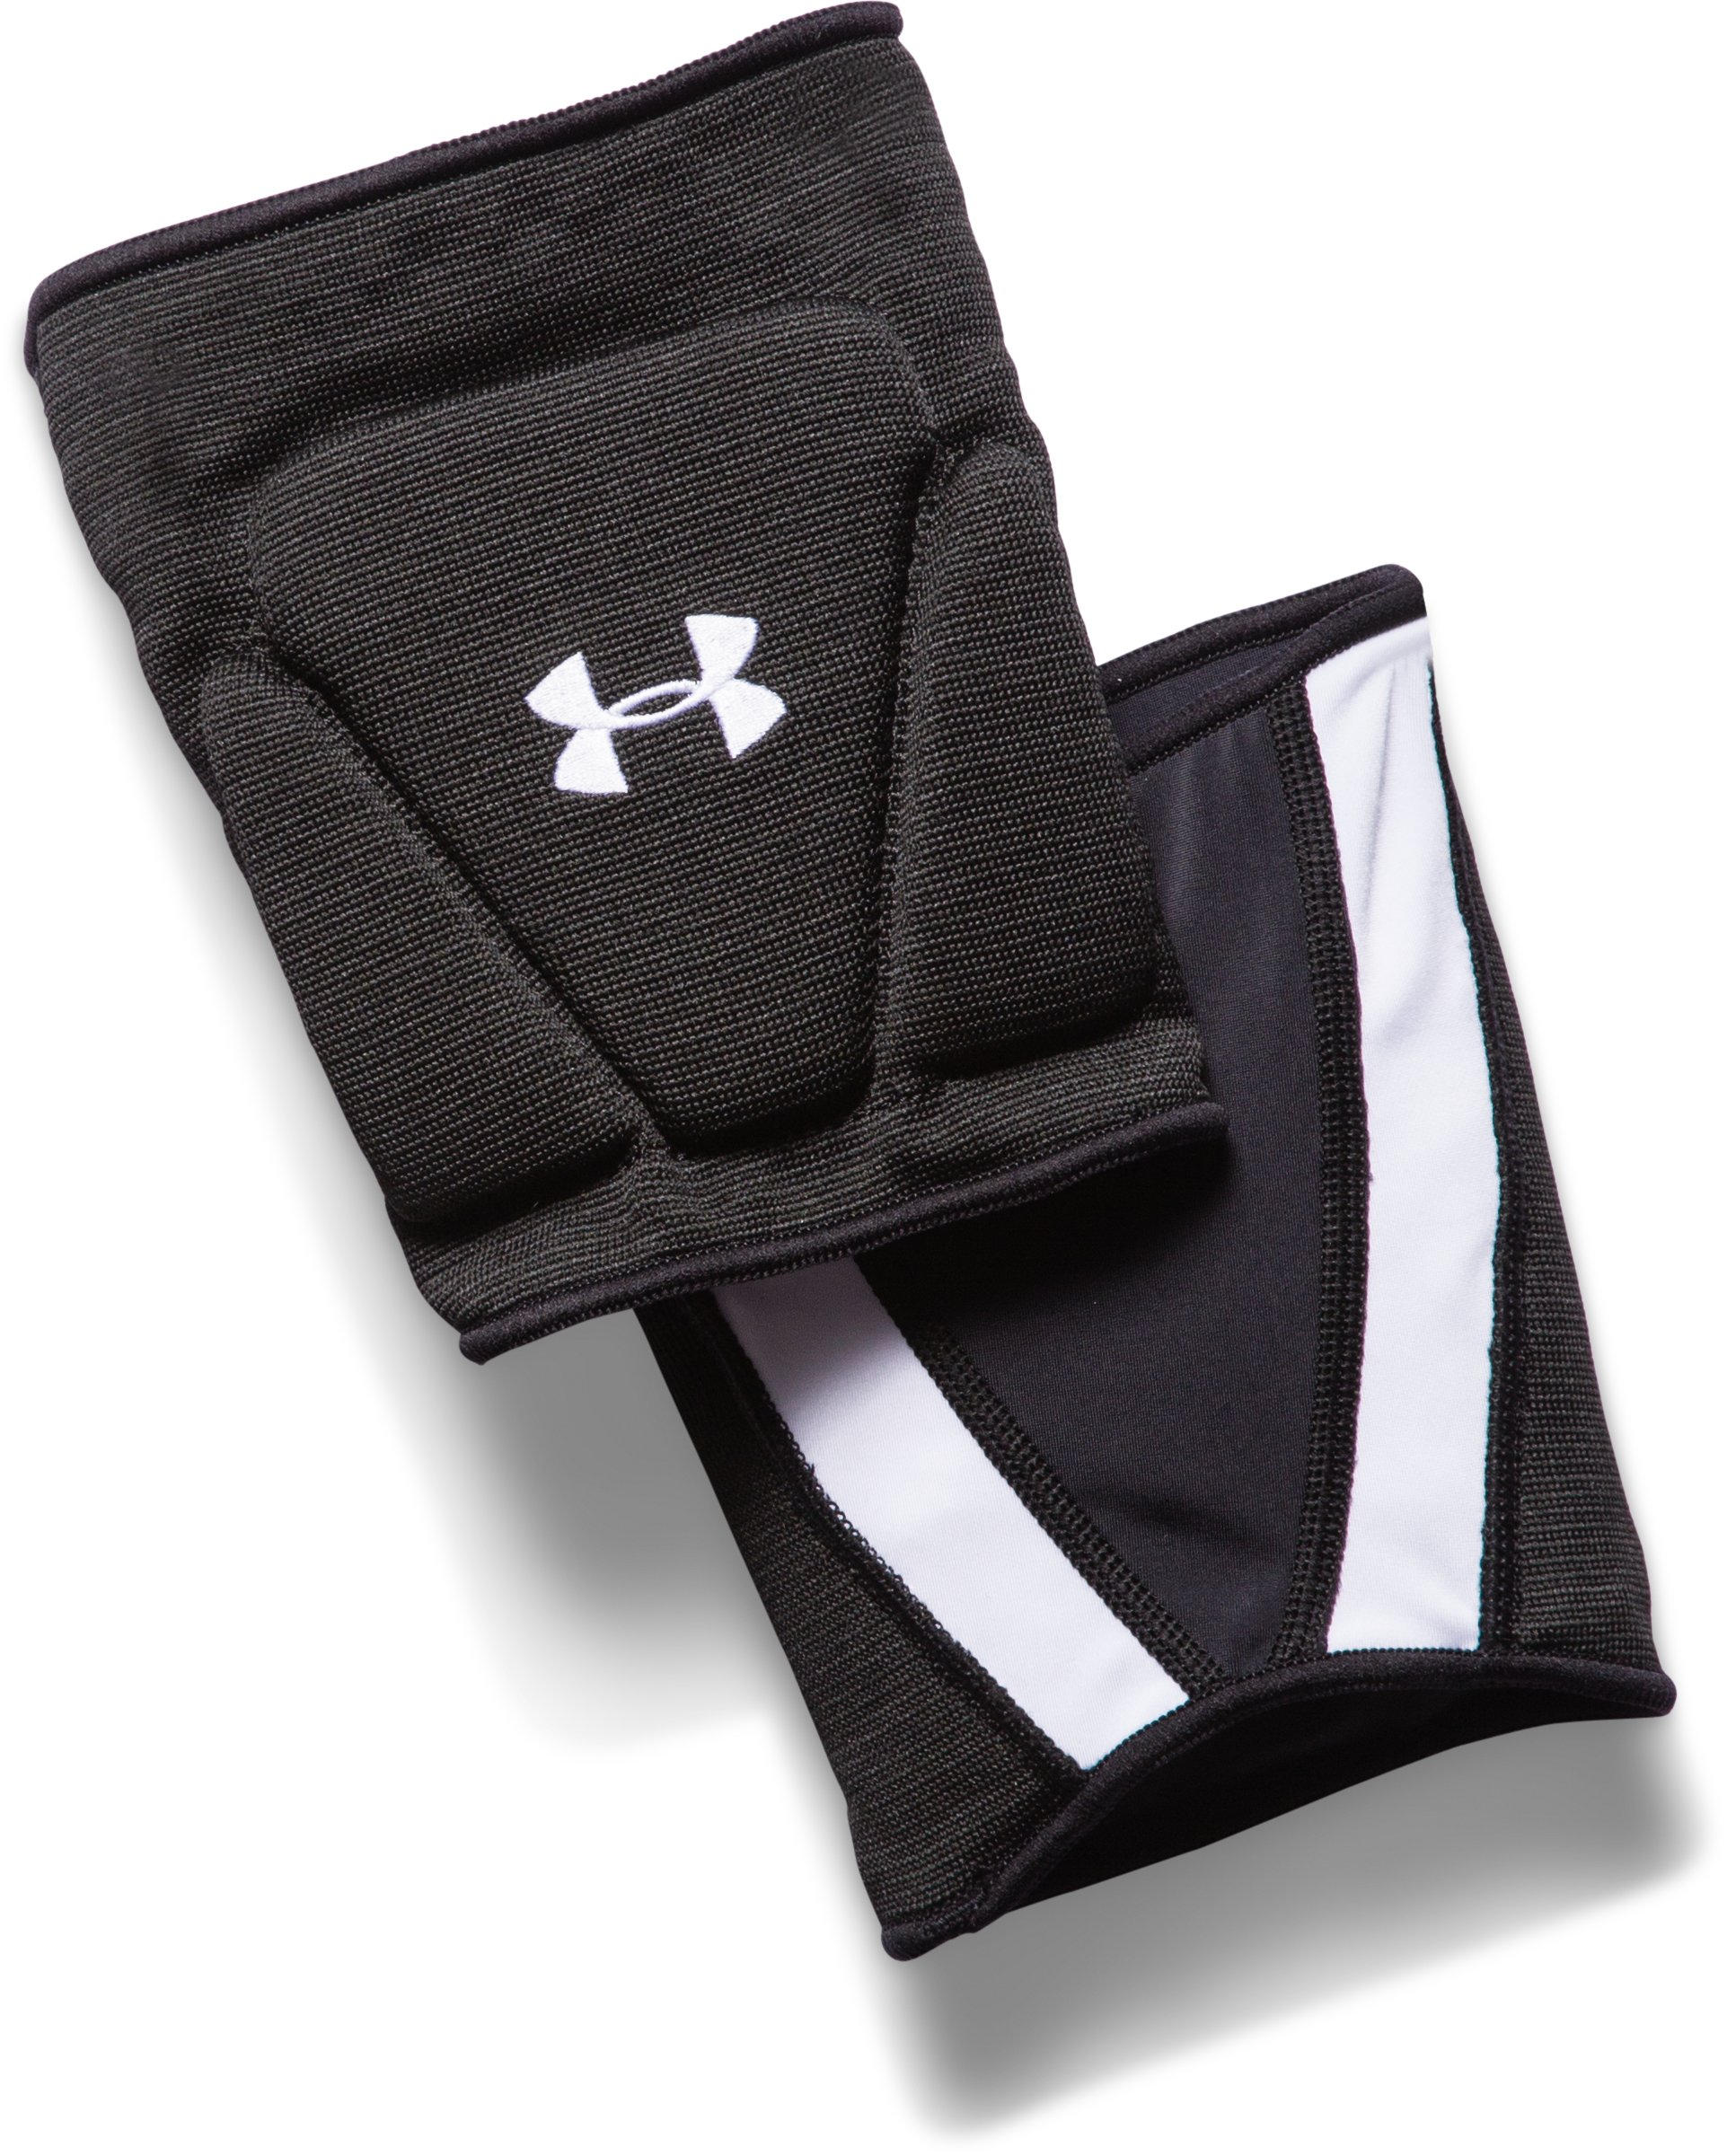 UA Strive Volleyball Knee Pads, Black